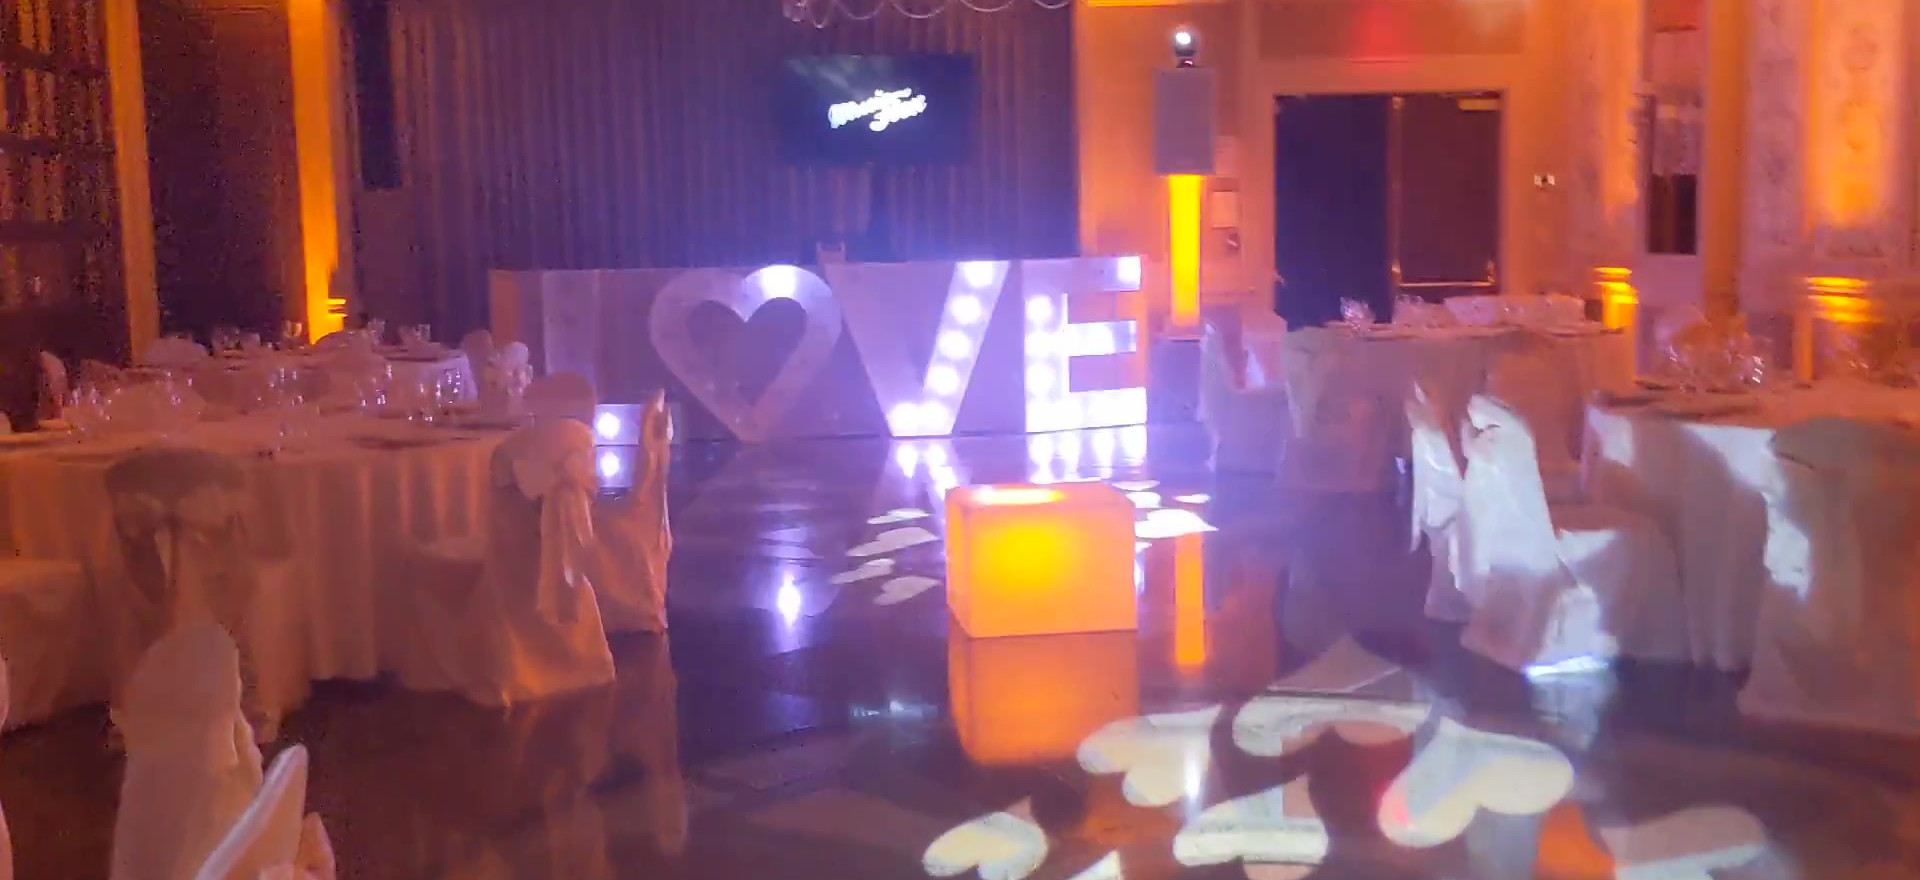 Love Booth & Uplights Video 2